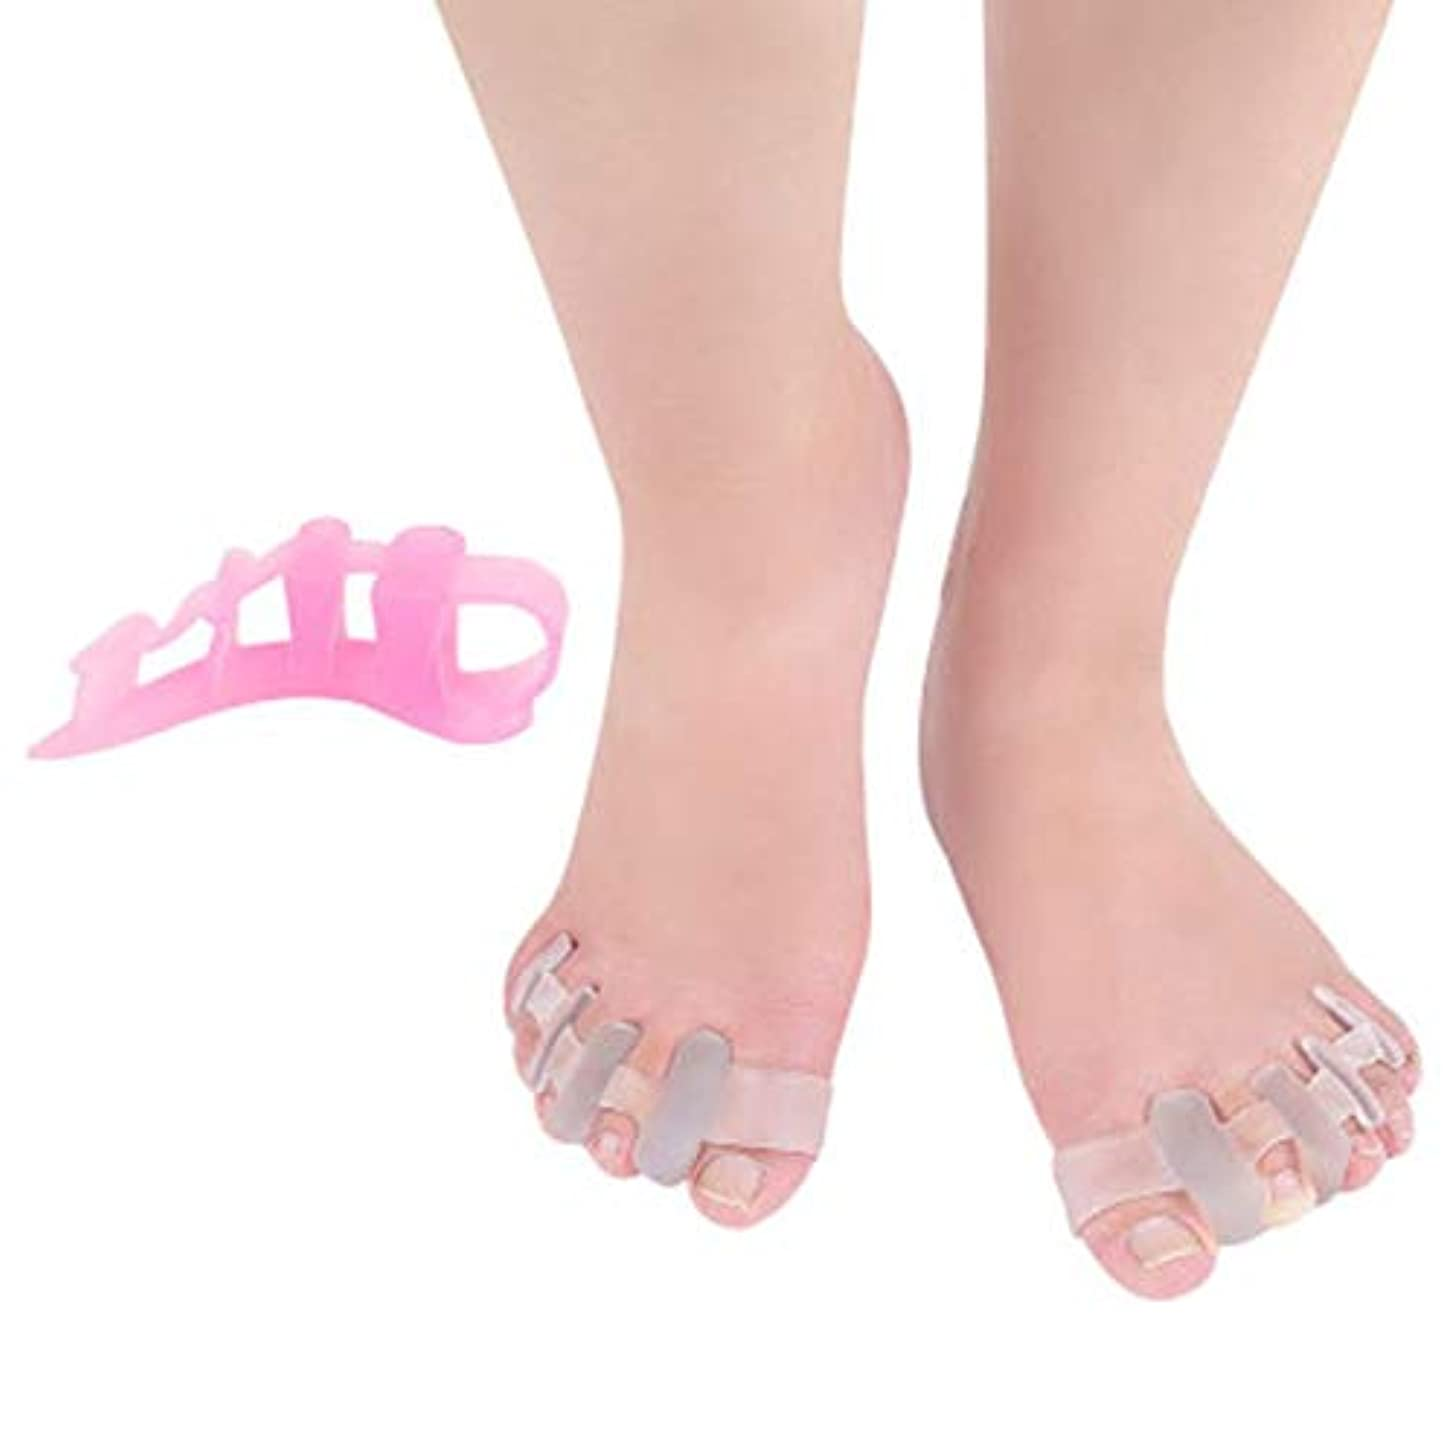 喜びパドルフレアMagRing Gel Toe Separator Toe Bunion Hallux Valgus Toe Stretchers for Men and Womenすぐに痛みを軽減イージーウェアカラー:透明